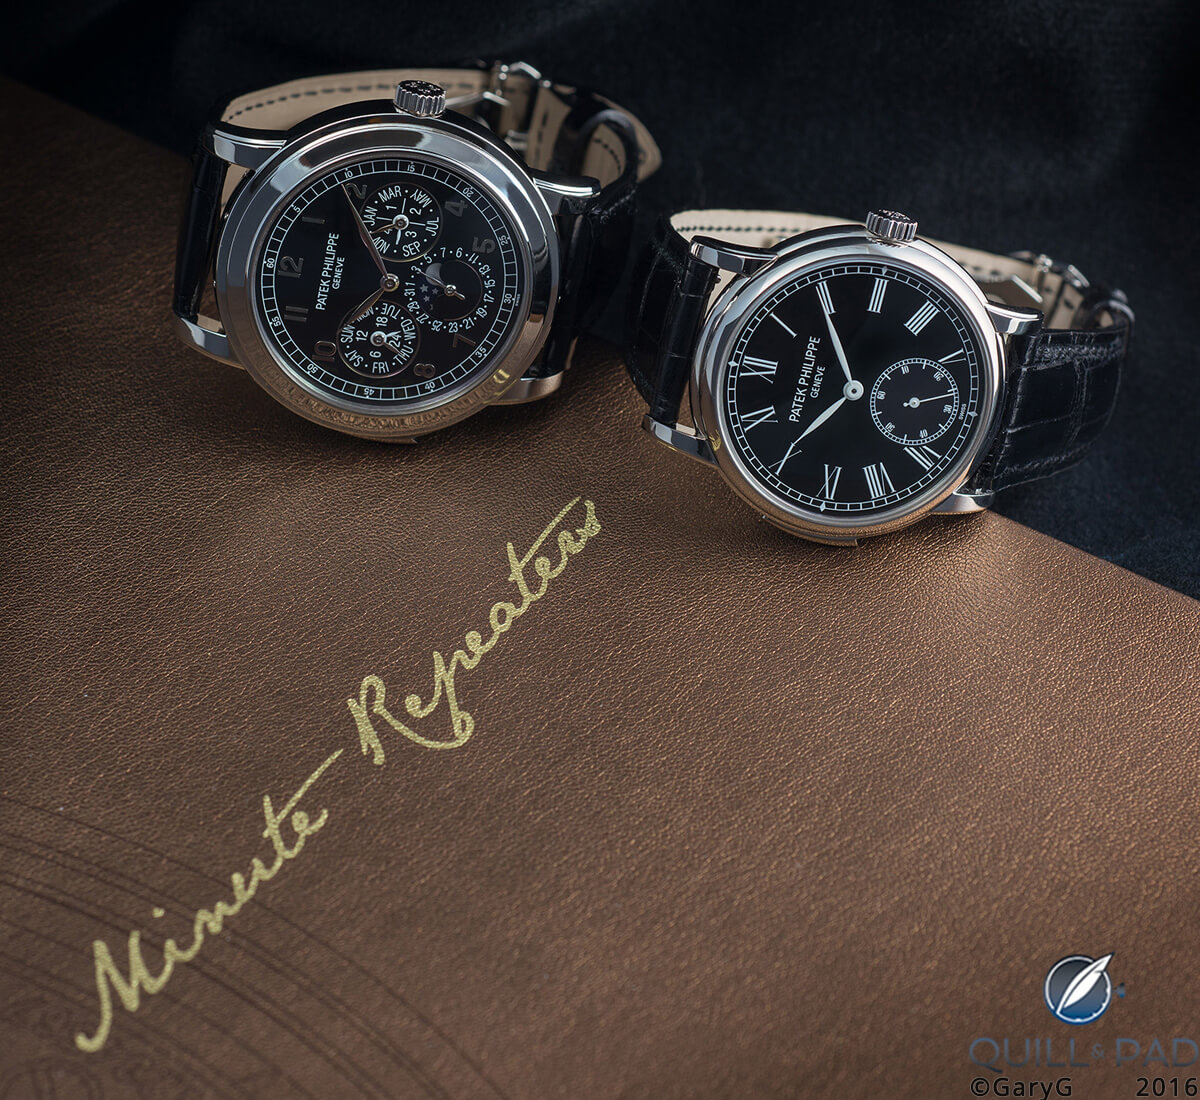 Part of a strong lineage: Patek Philippe 5074P and 5078P minute repeaters